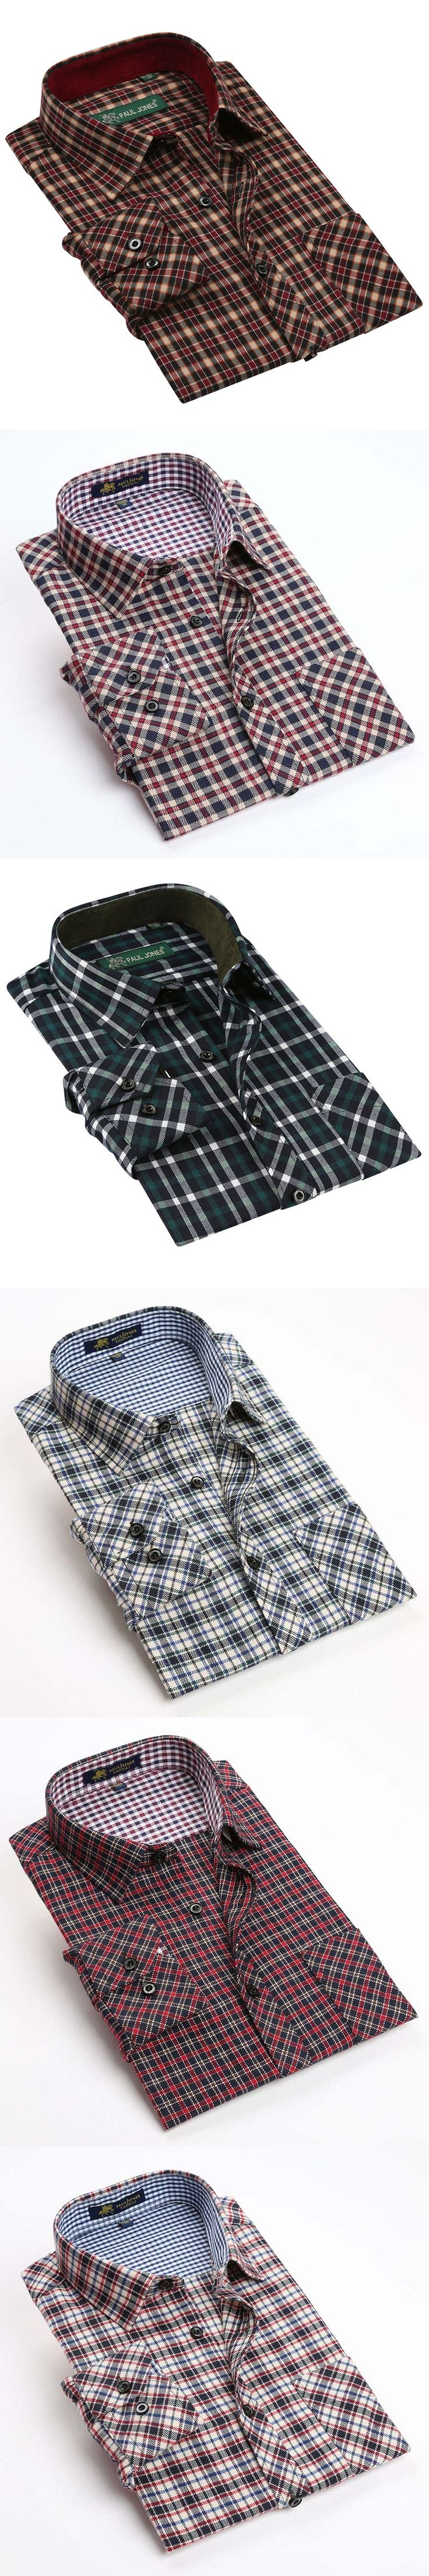 New 2017 spring Mens brand Long sleeve plaid shirts Flannel sueded shirts for men Thick warm shirt men 20 colors 100% microfiber